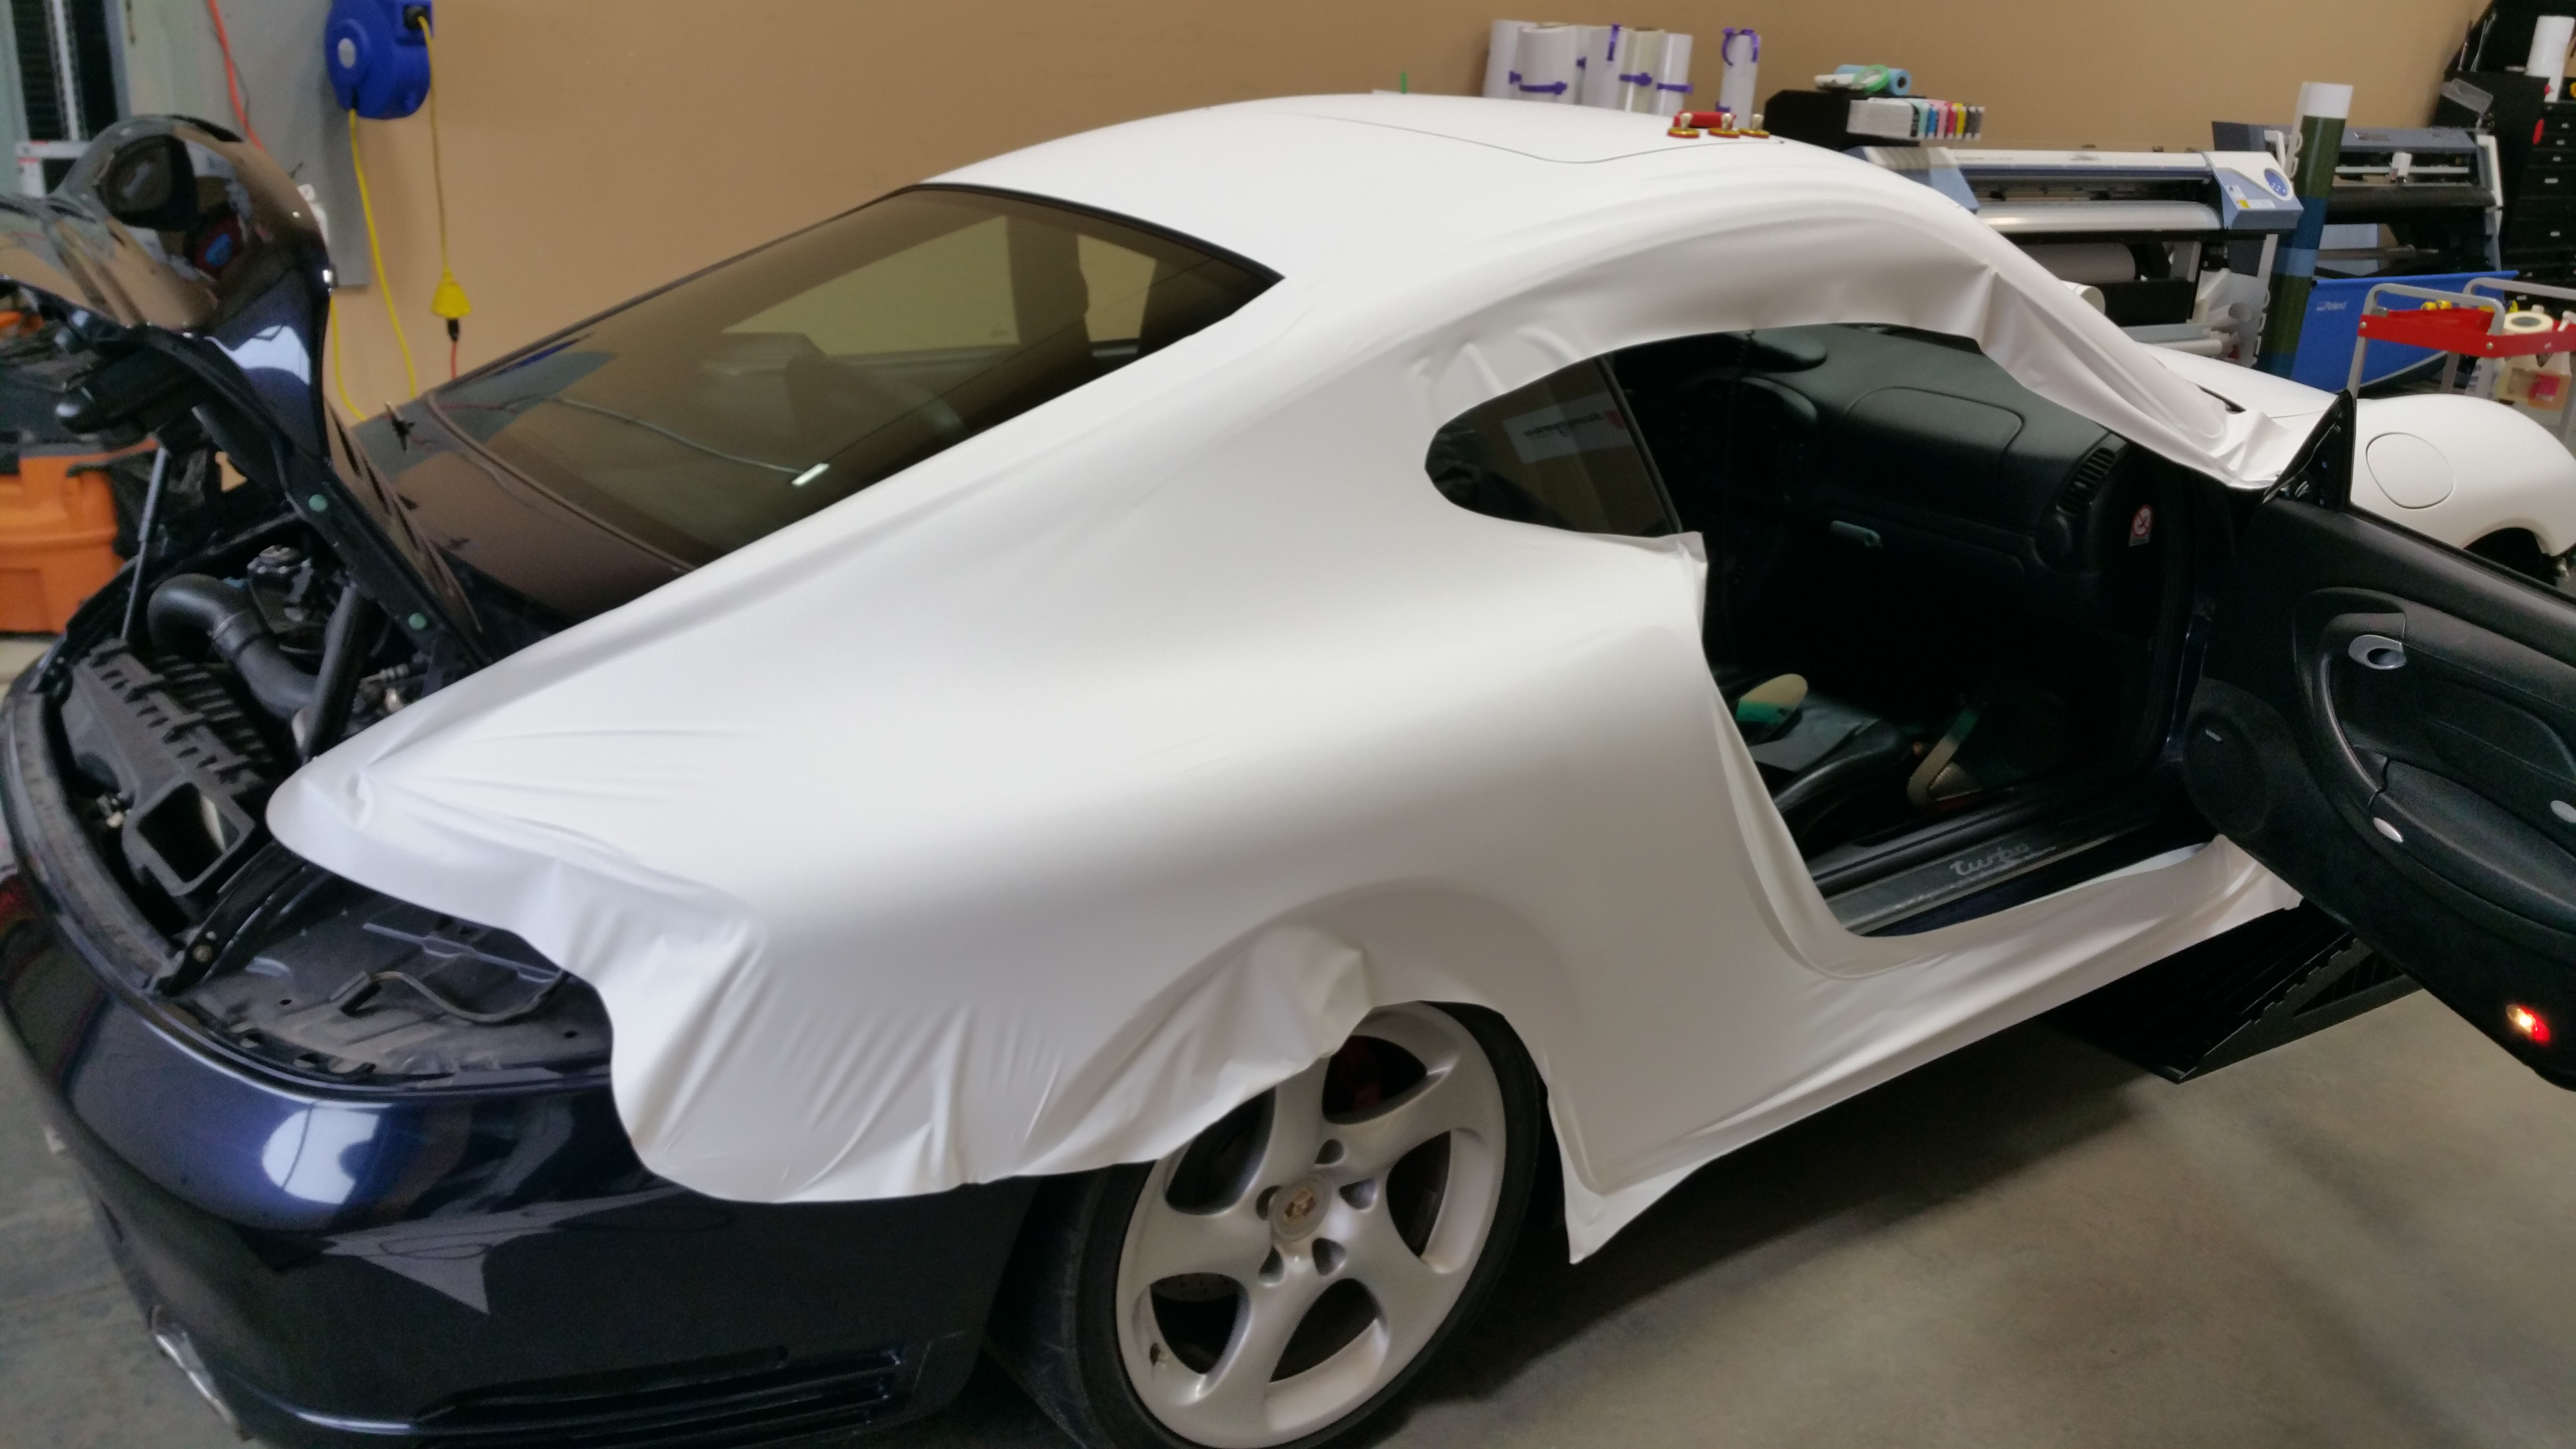 Porsche's right door and side during wrapping process.